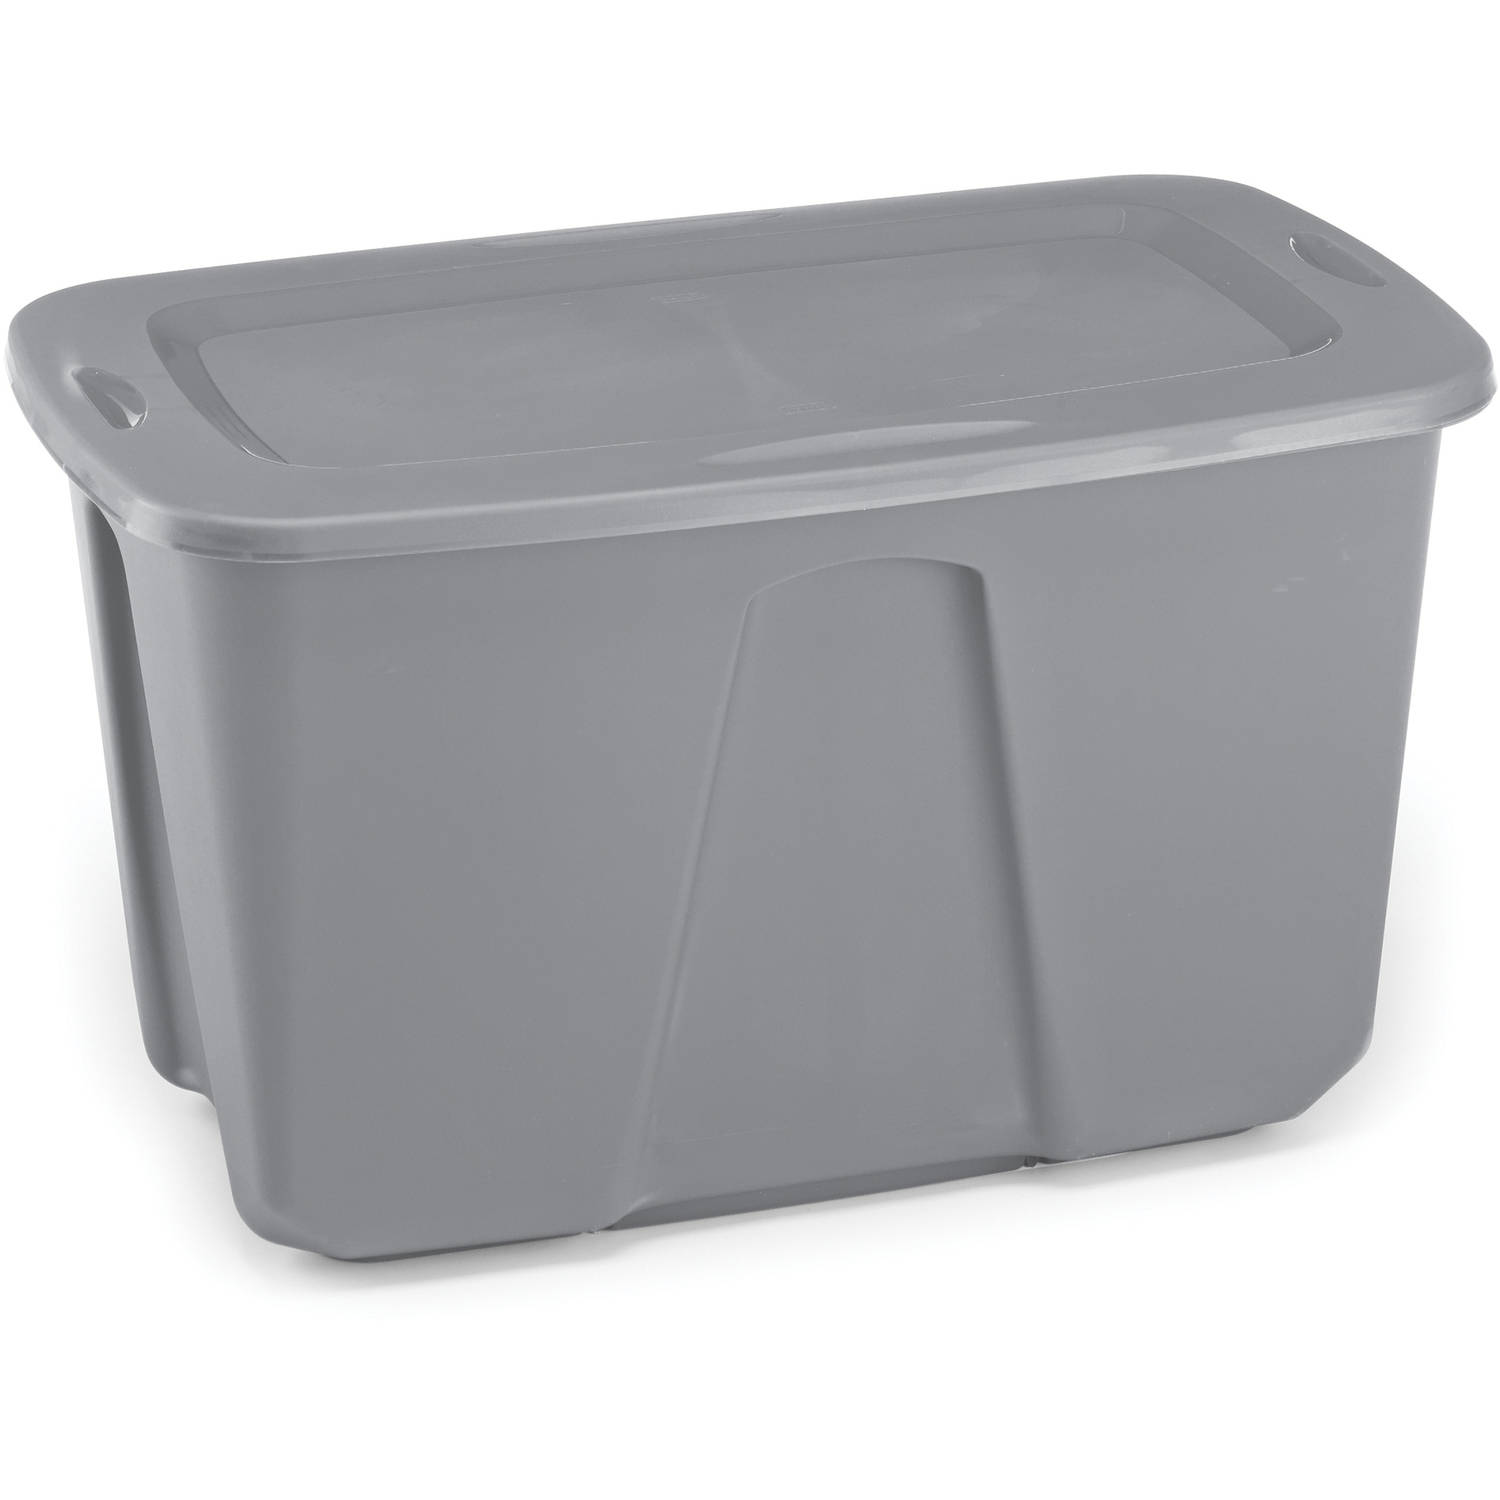 kitchen and parts storage tub huge popular xfile style boxes lids large for cheap tubs stackable with pic astonishing clothes box extra appealing plastic containers bins